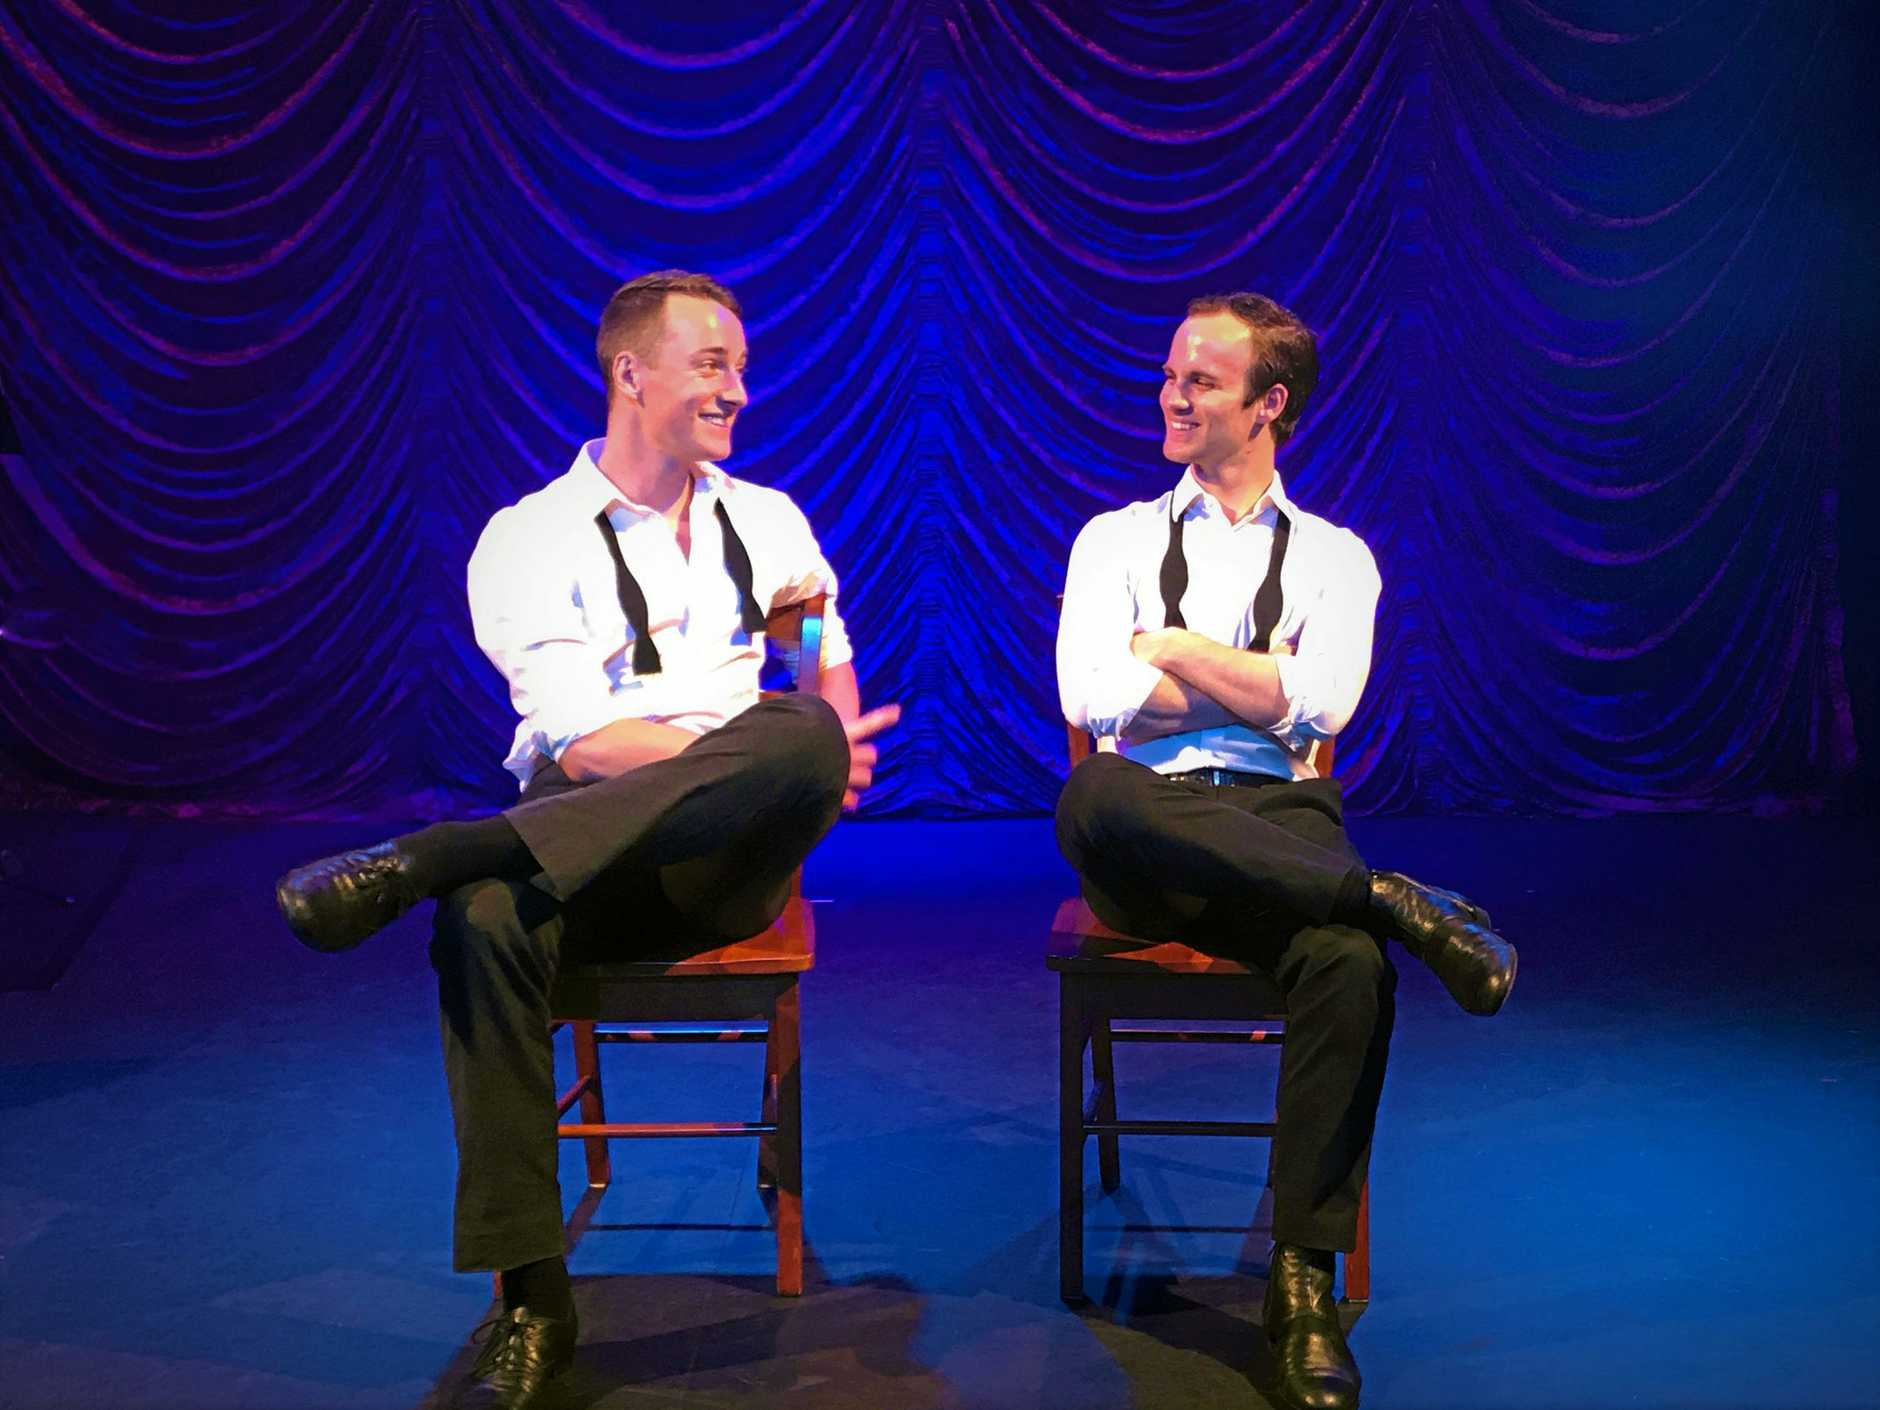 SING-ALONG: Just a Couple of Song and Dance Men is coming to the MECC in August.